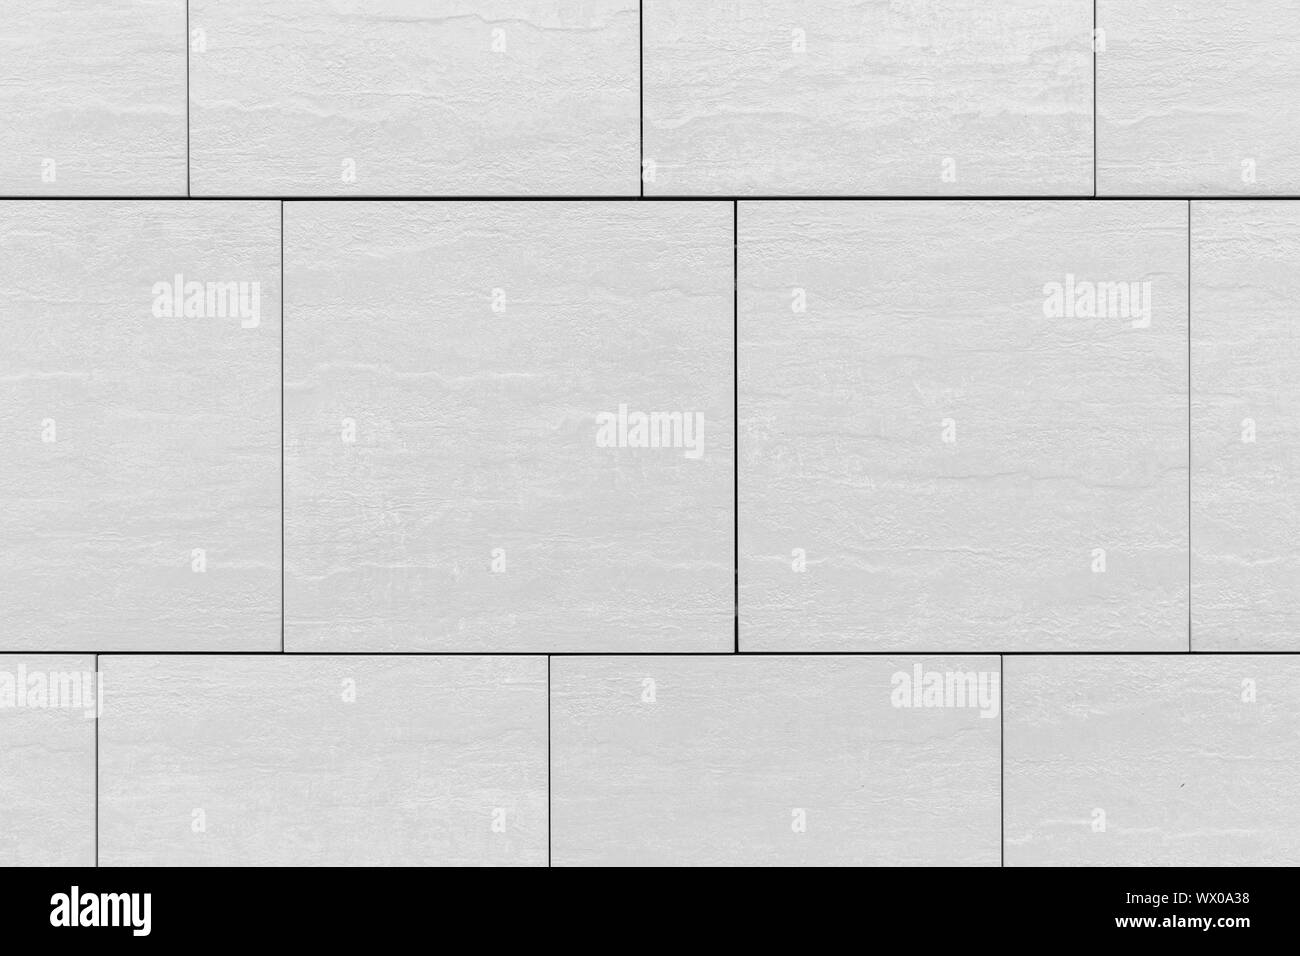 floor decor flooring checkered.htm tile pattern black and white stock photos   images alamy  tile pattern black and white stock